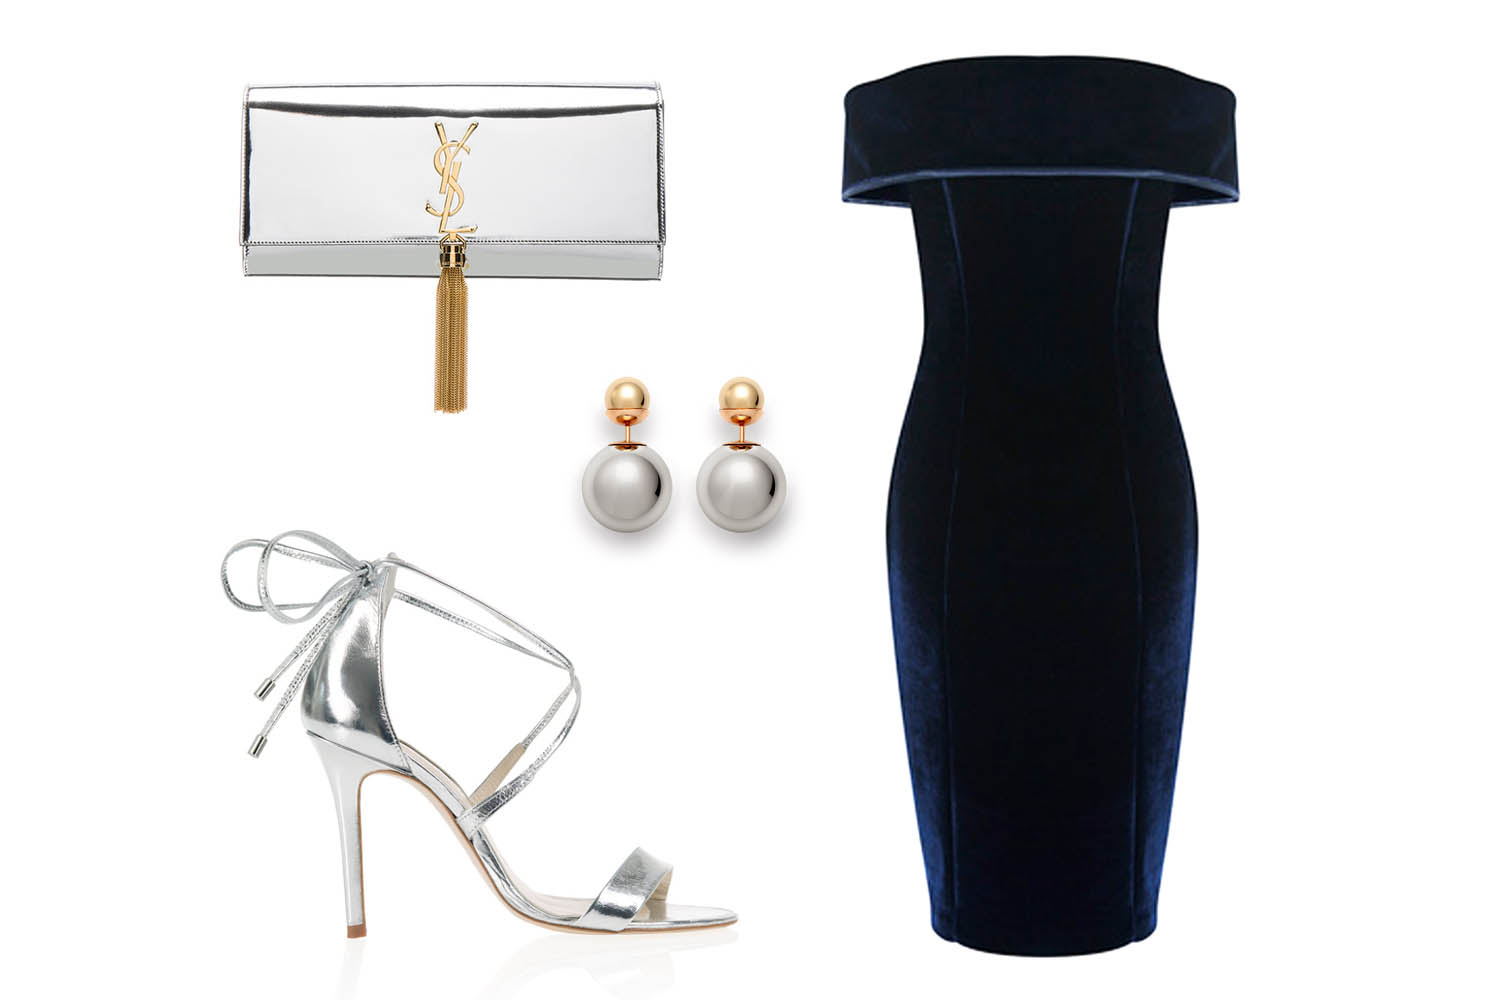 Coast cavalleri bardot velvet dress with freya rose Helena silver opulent shoes with YSL clutch and pear earrings